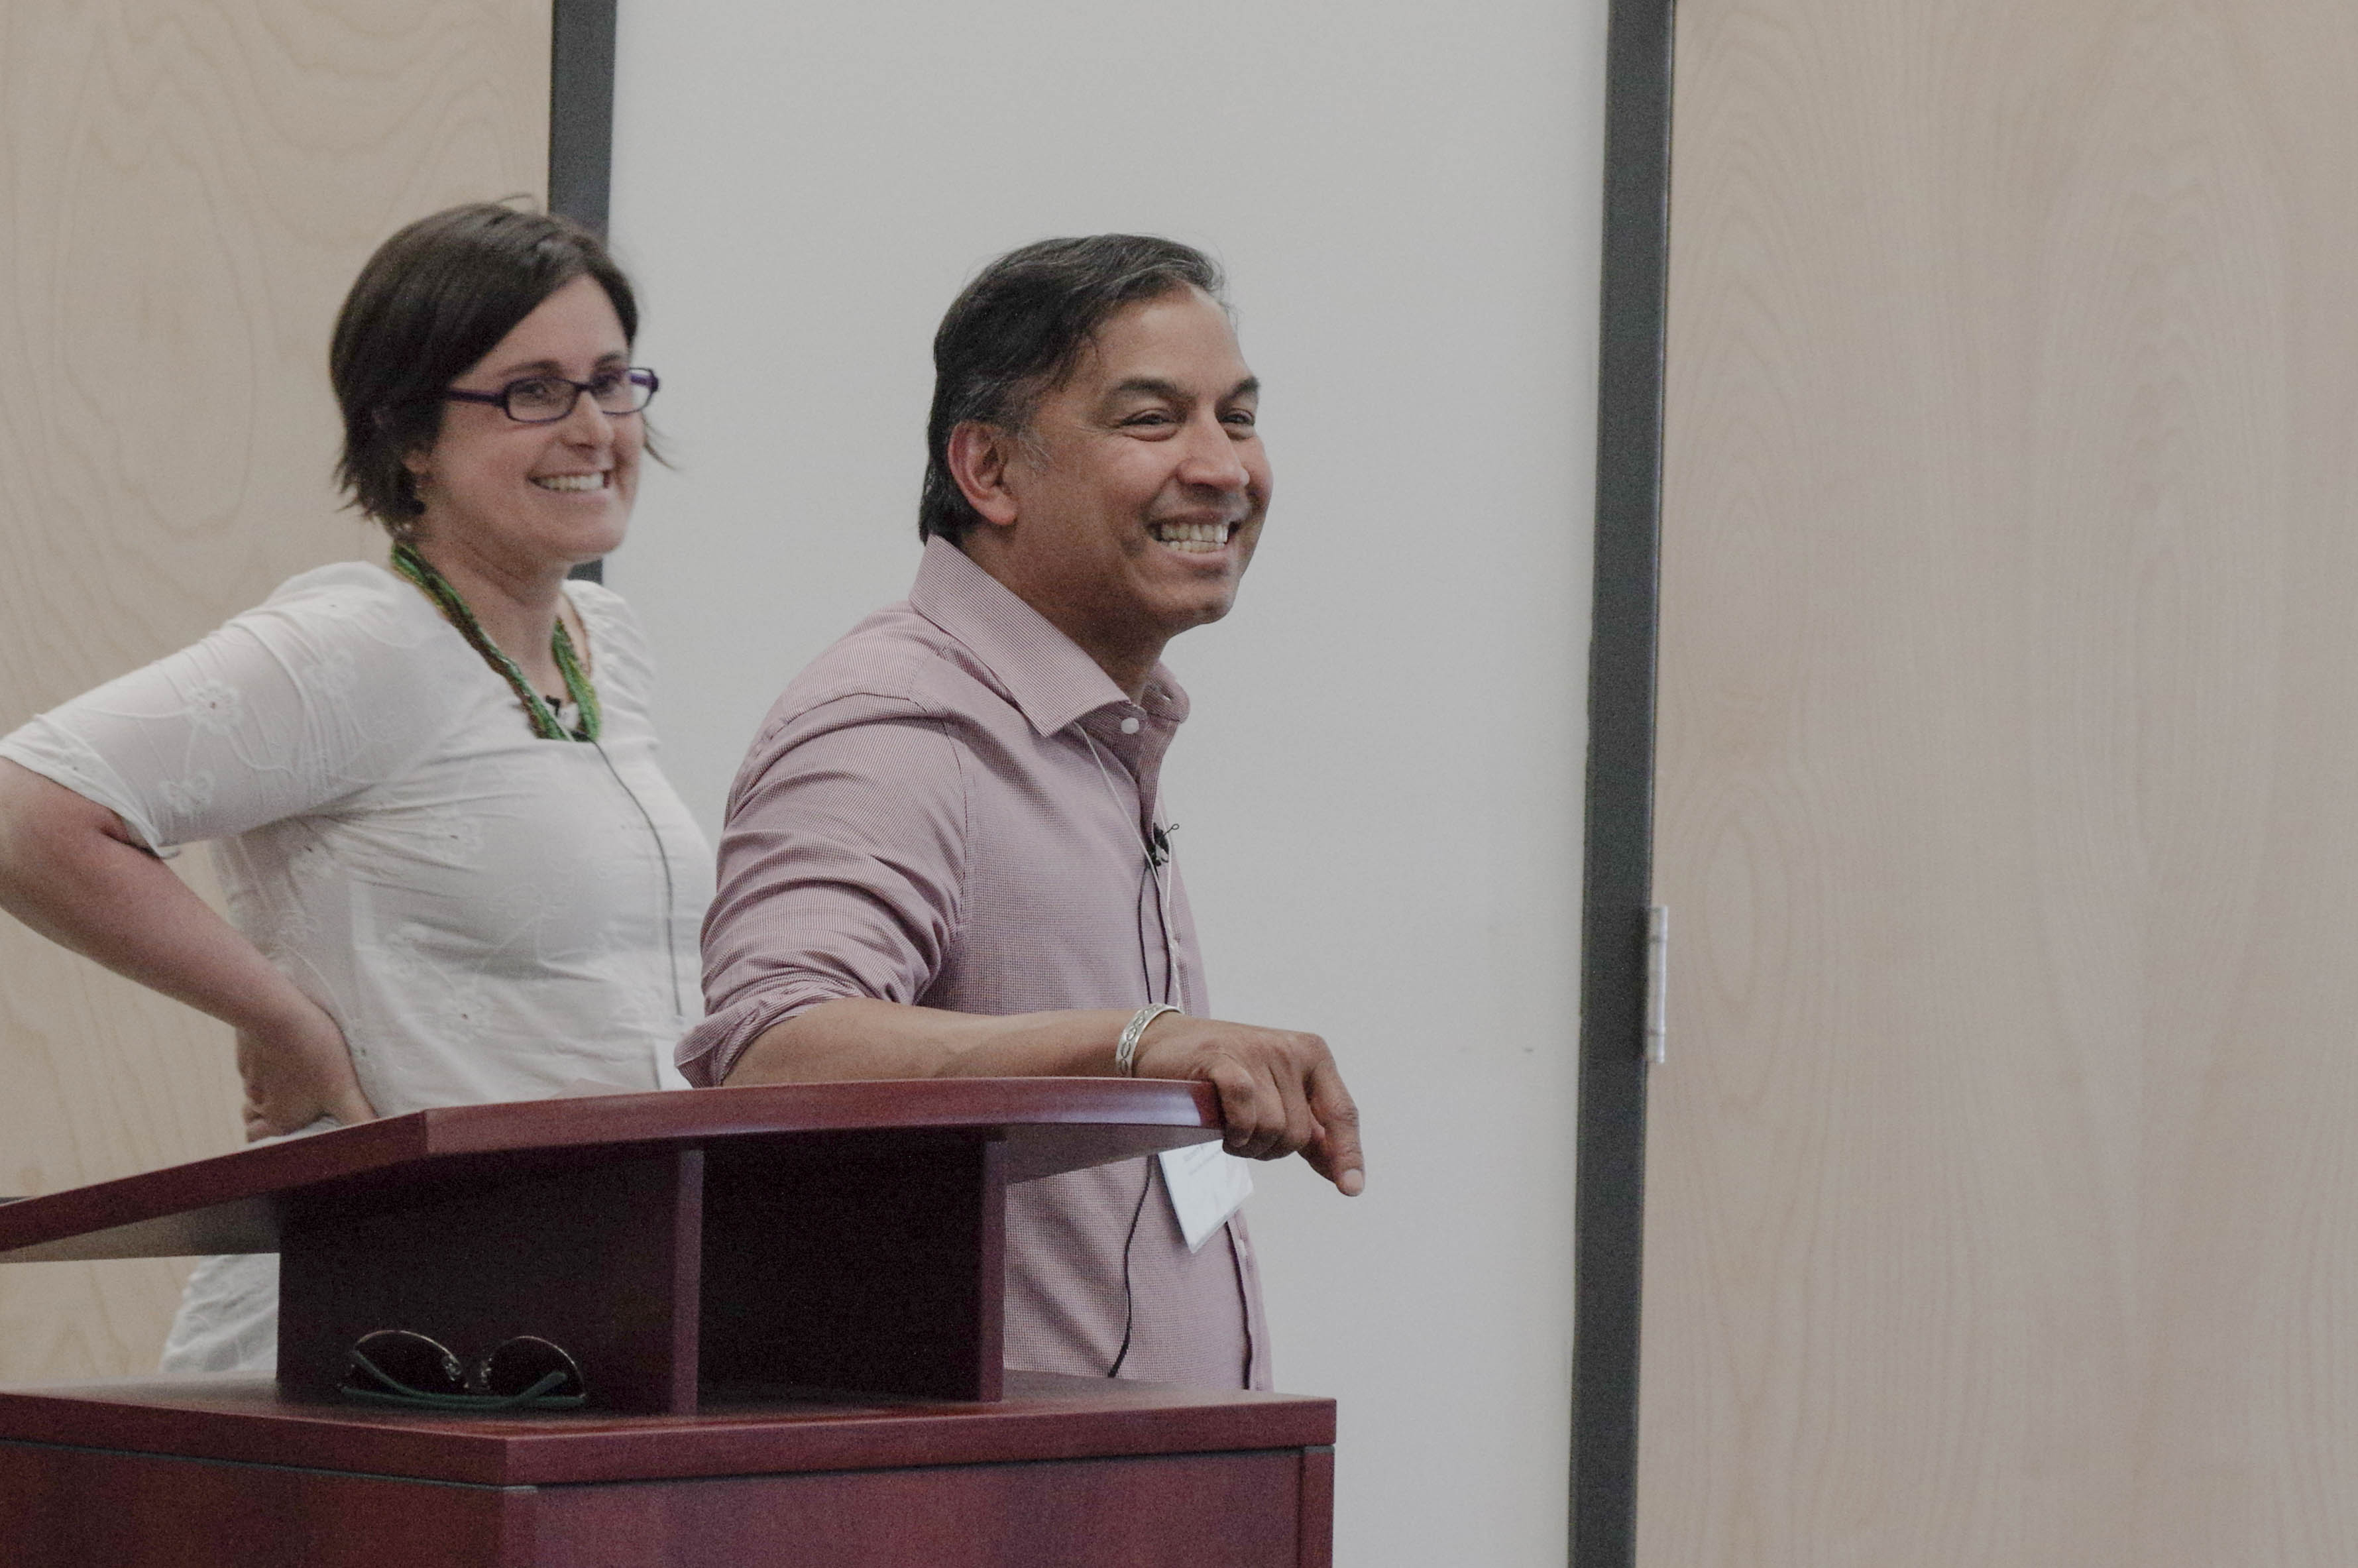 Dr. Rachel Engler-Stringer and Dr. Nazeem Muhajarine at Food Environments in Canada.